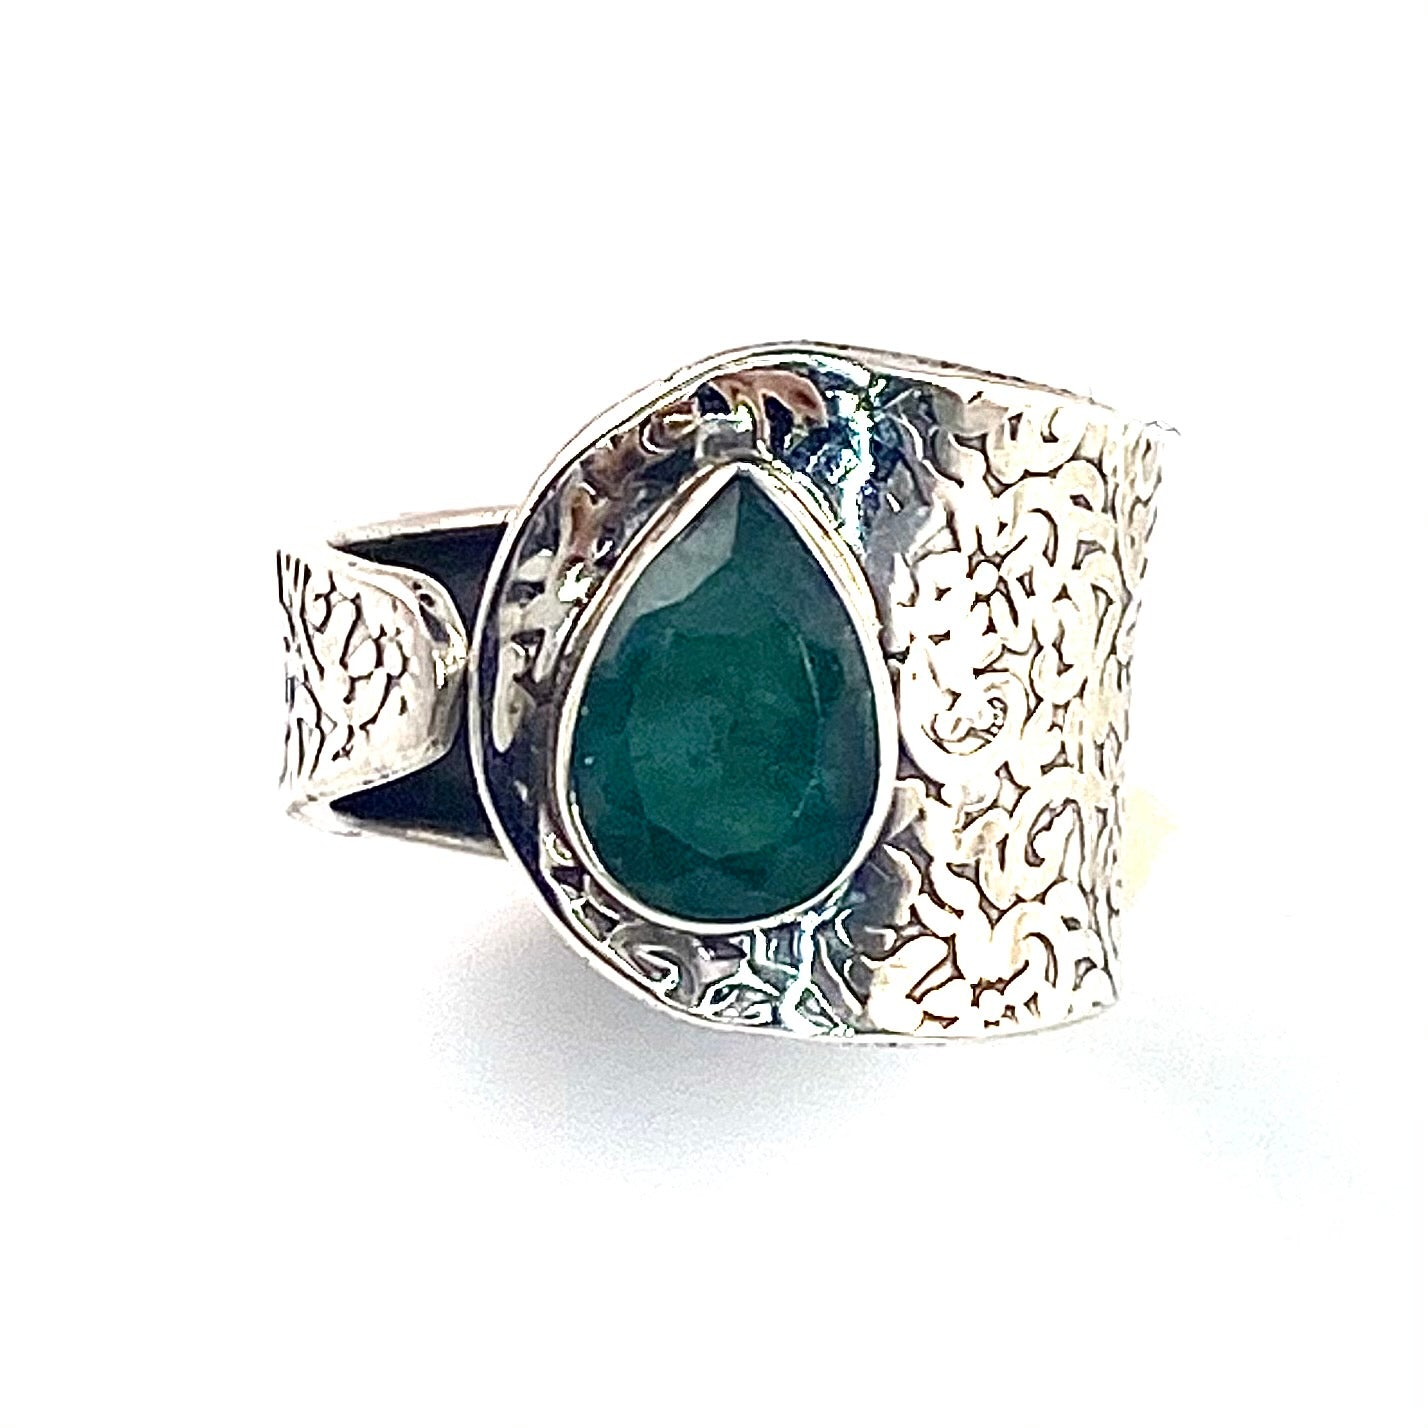 Emerald Sterling Silver Adjustable Textured Ring